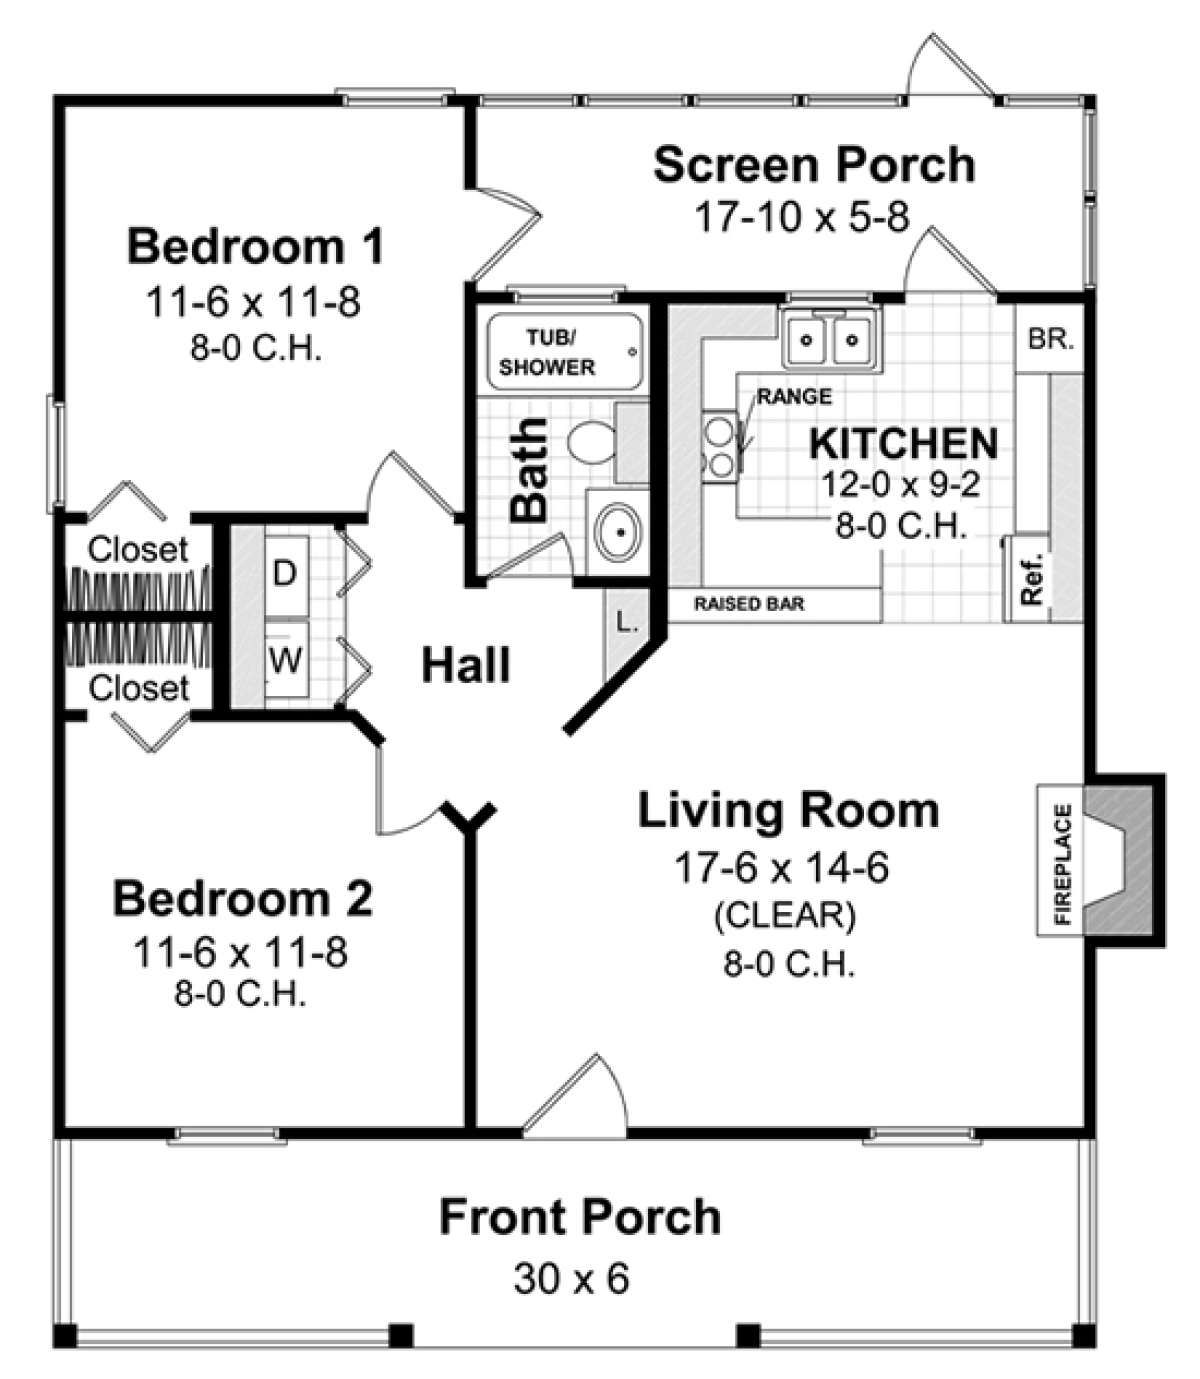 House Plan 348 00259 Country Plan 800 Square Feet 2 Bedrooms 1 Bathroom In 2020 Square House Floor Plans Square House Plans House Plan With Loft